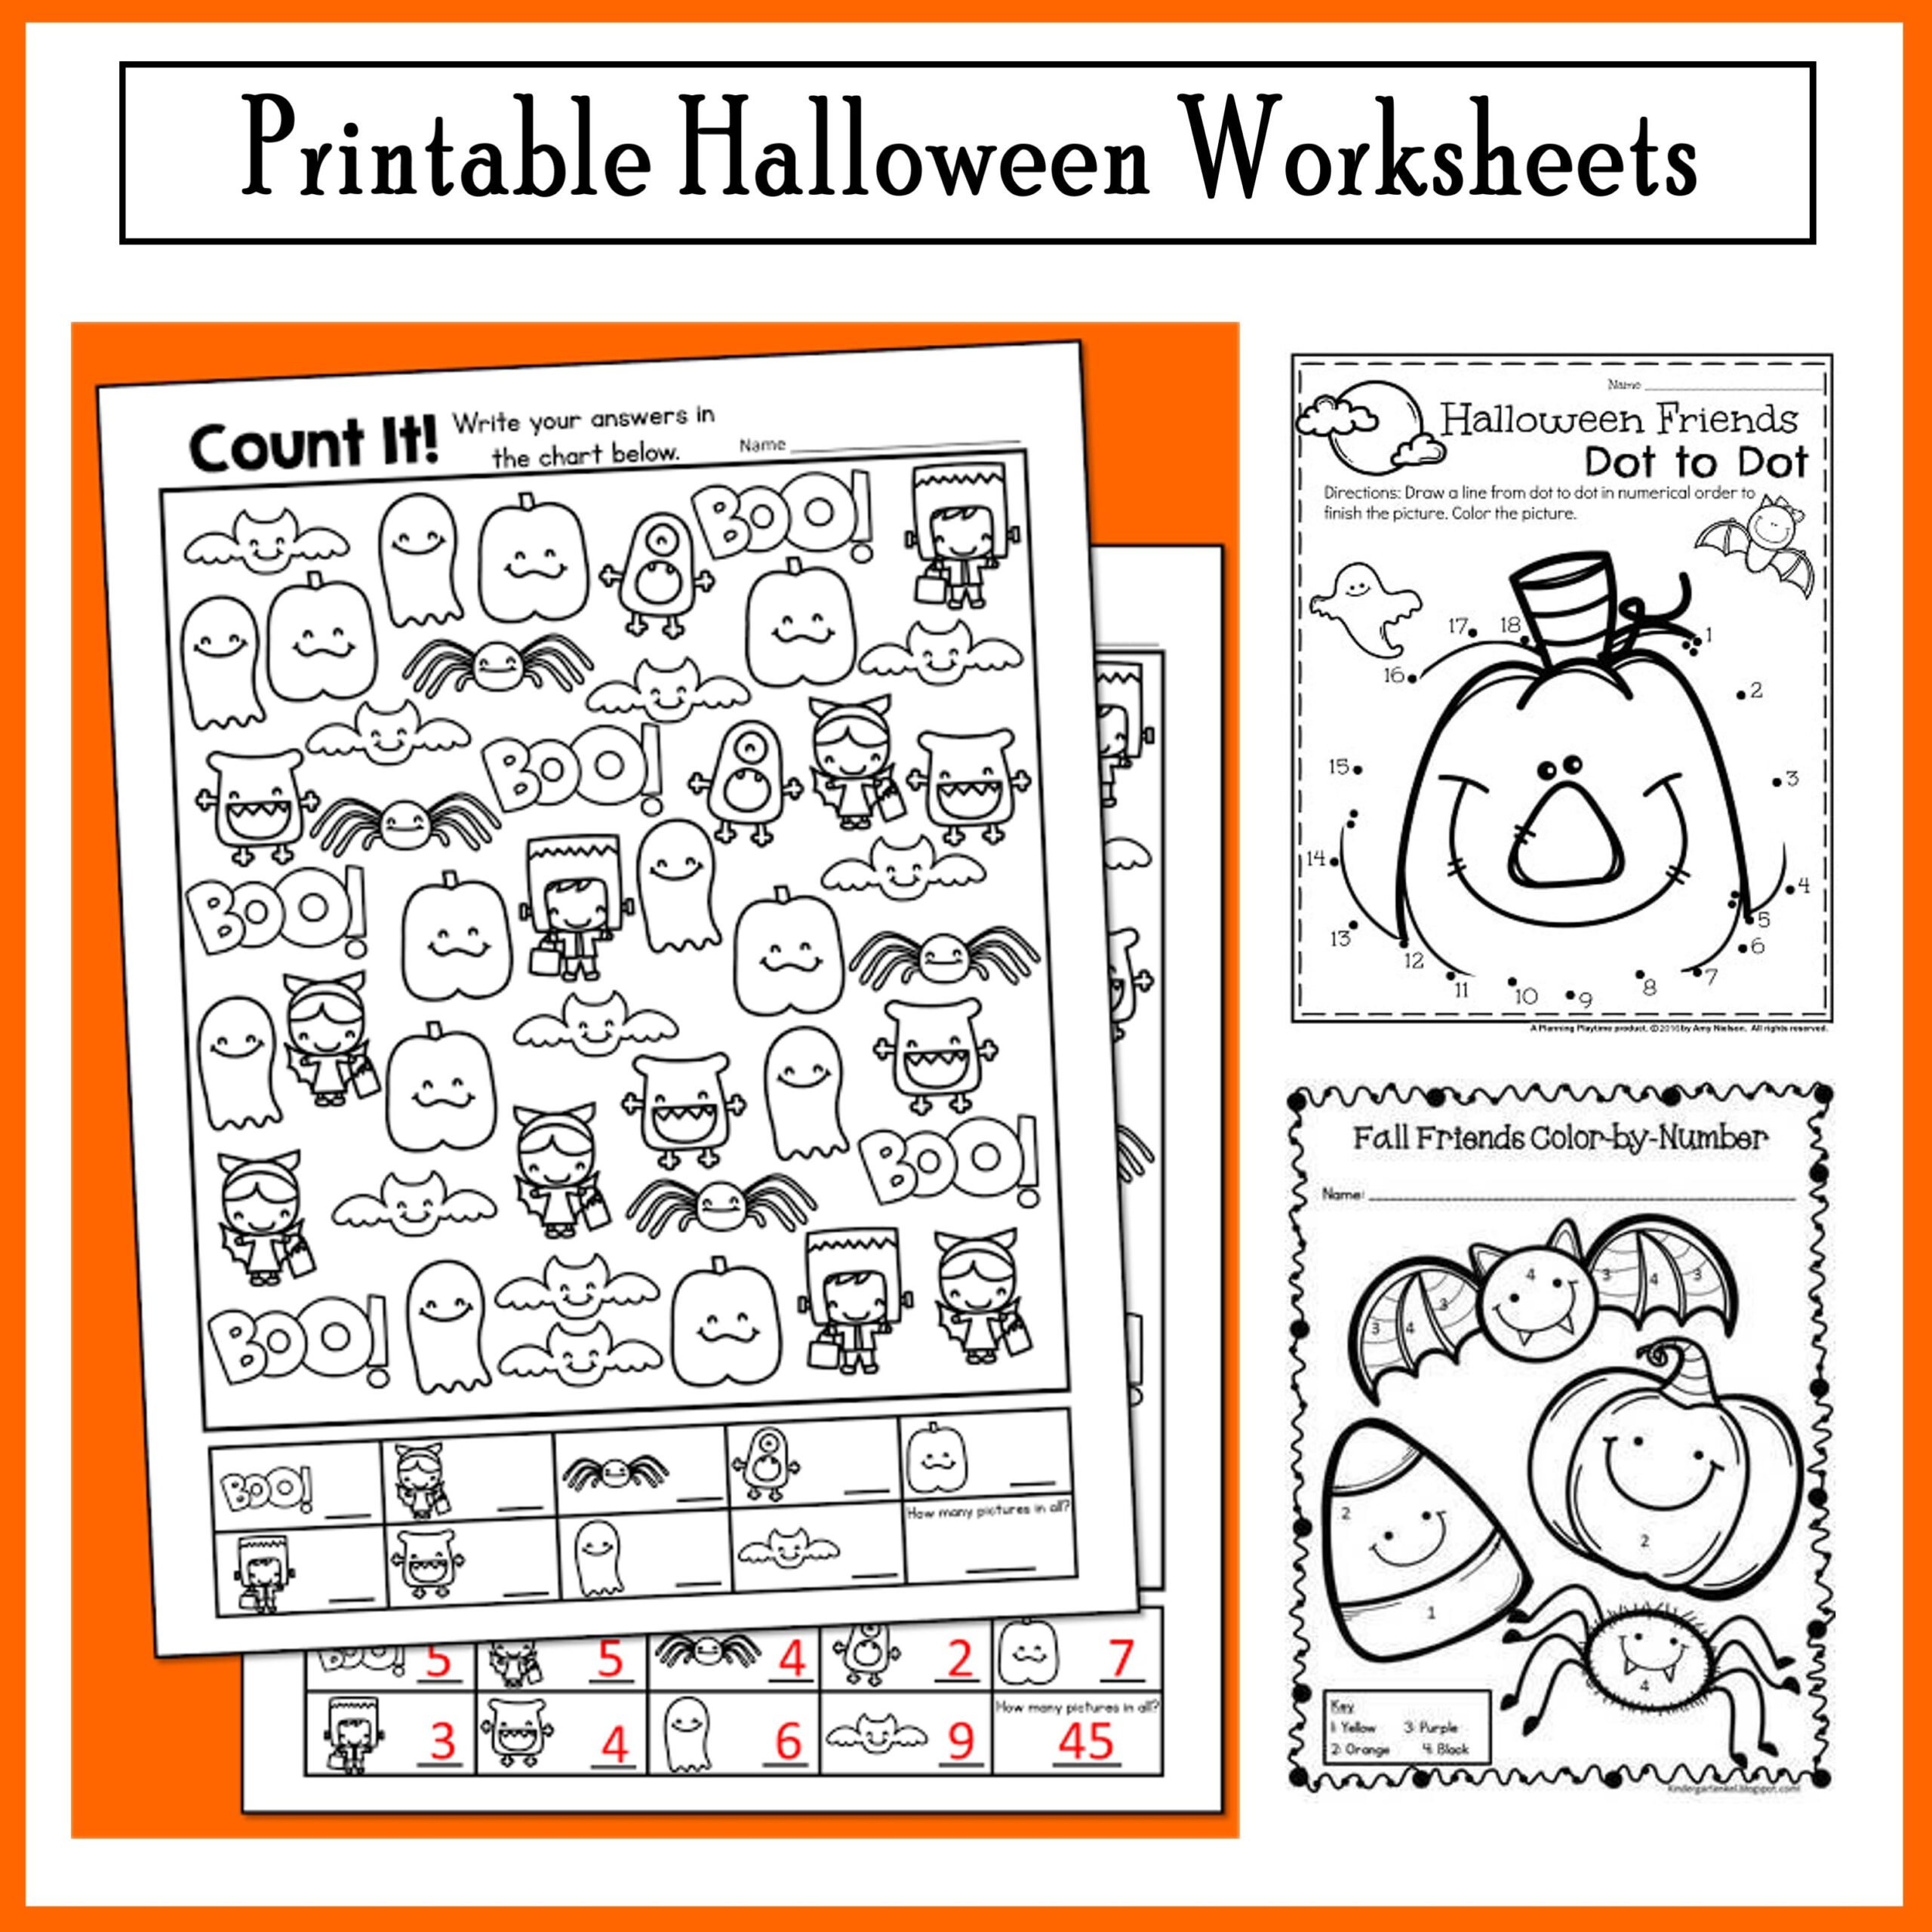 Halloween Worksheet That Are Suitable For 4th Grade